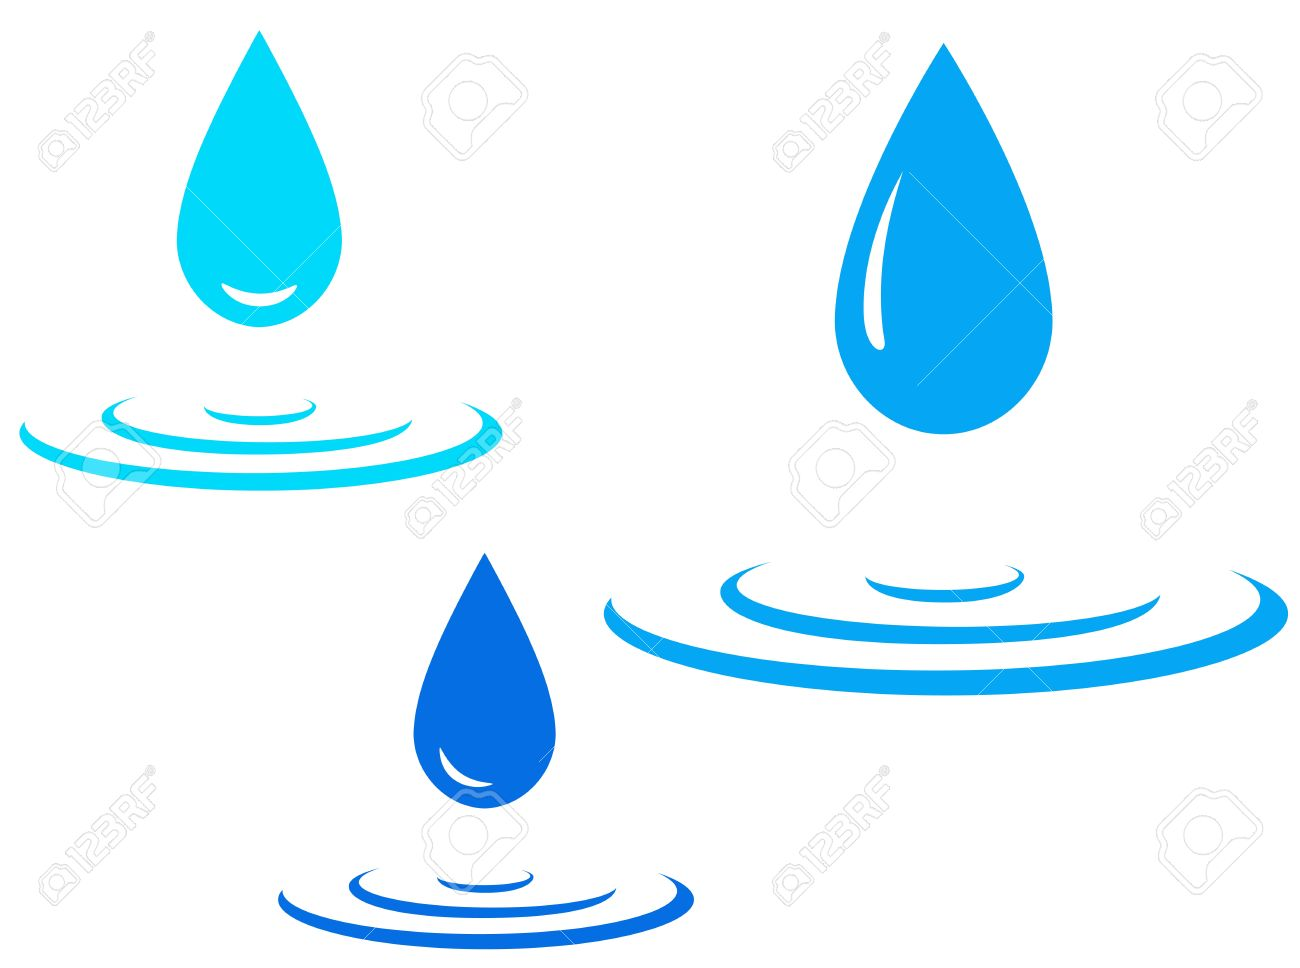 Drop Of Water Falling Clipart.